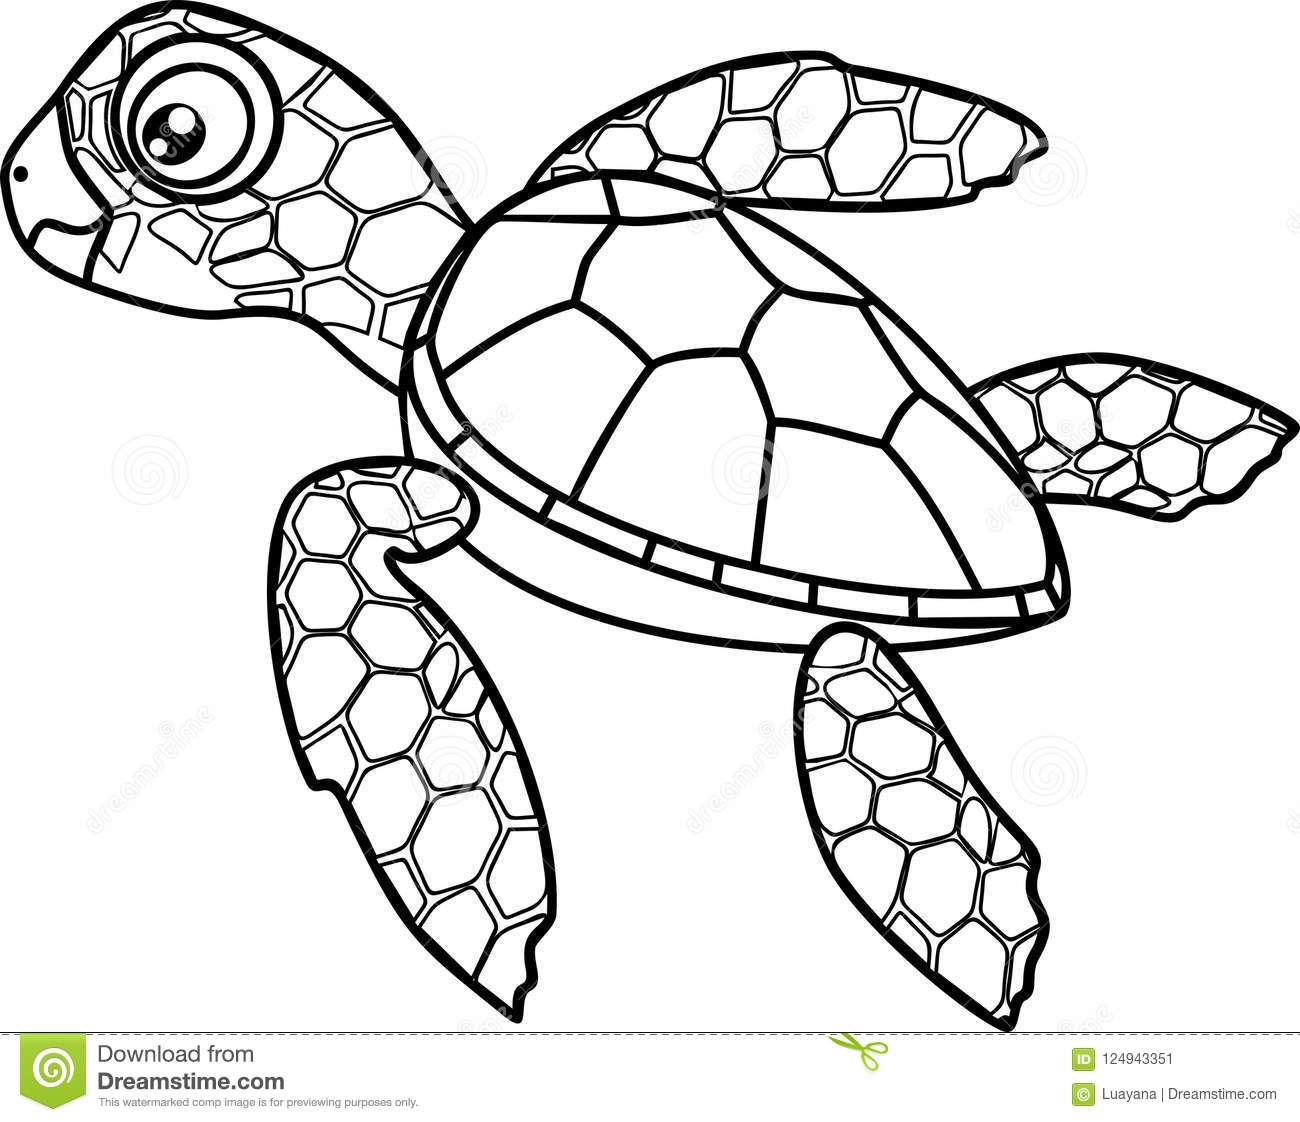 Coloring Page. Cute Cartoon Hatchling Of Sea Turtle Stock ...